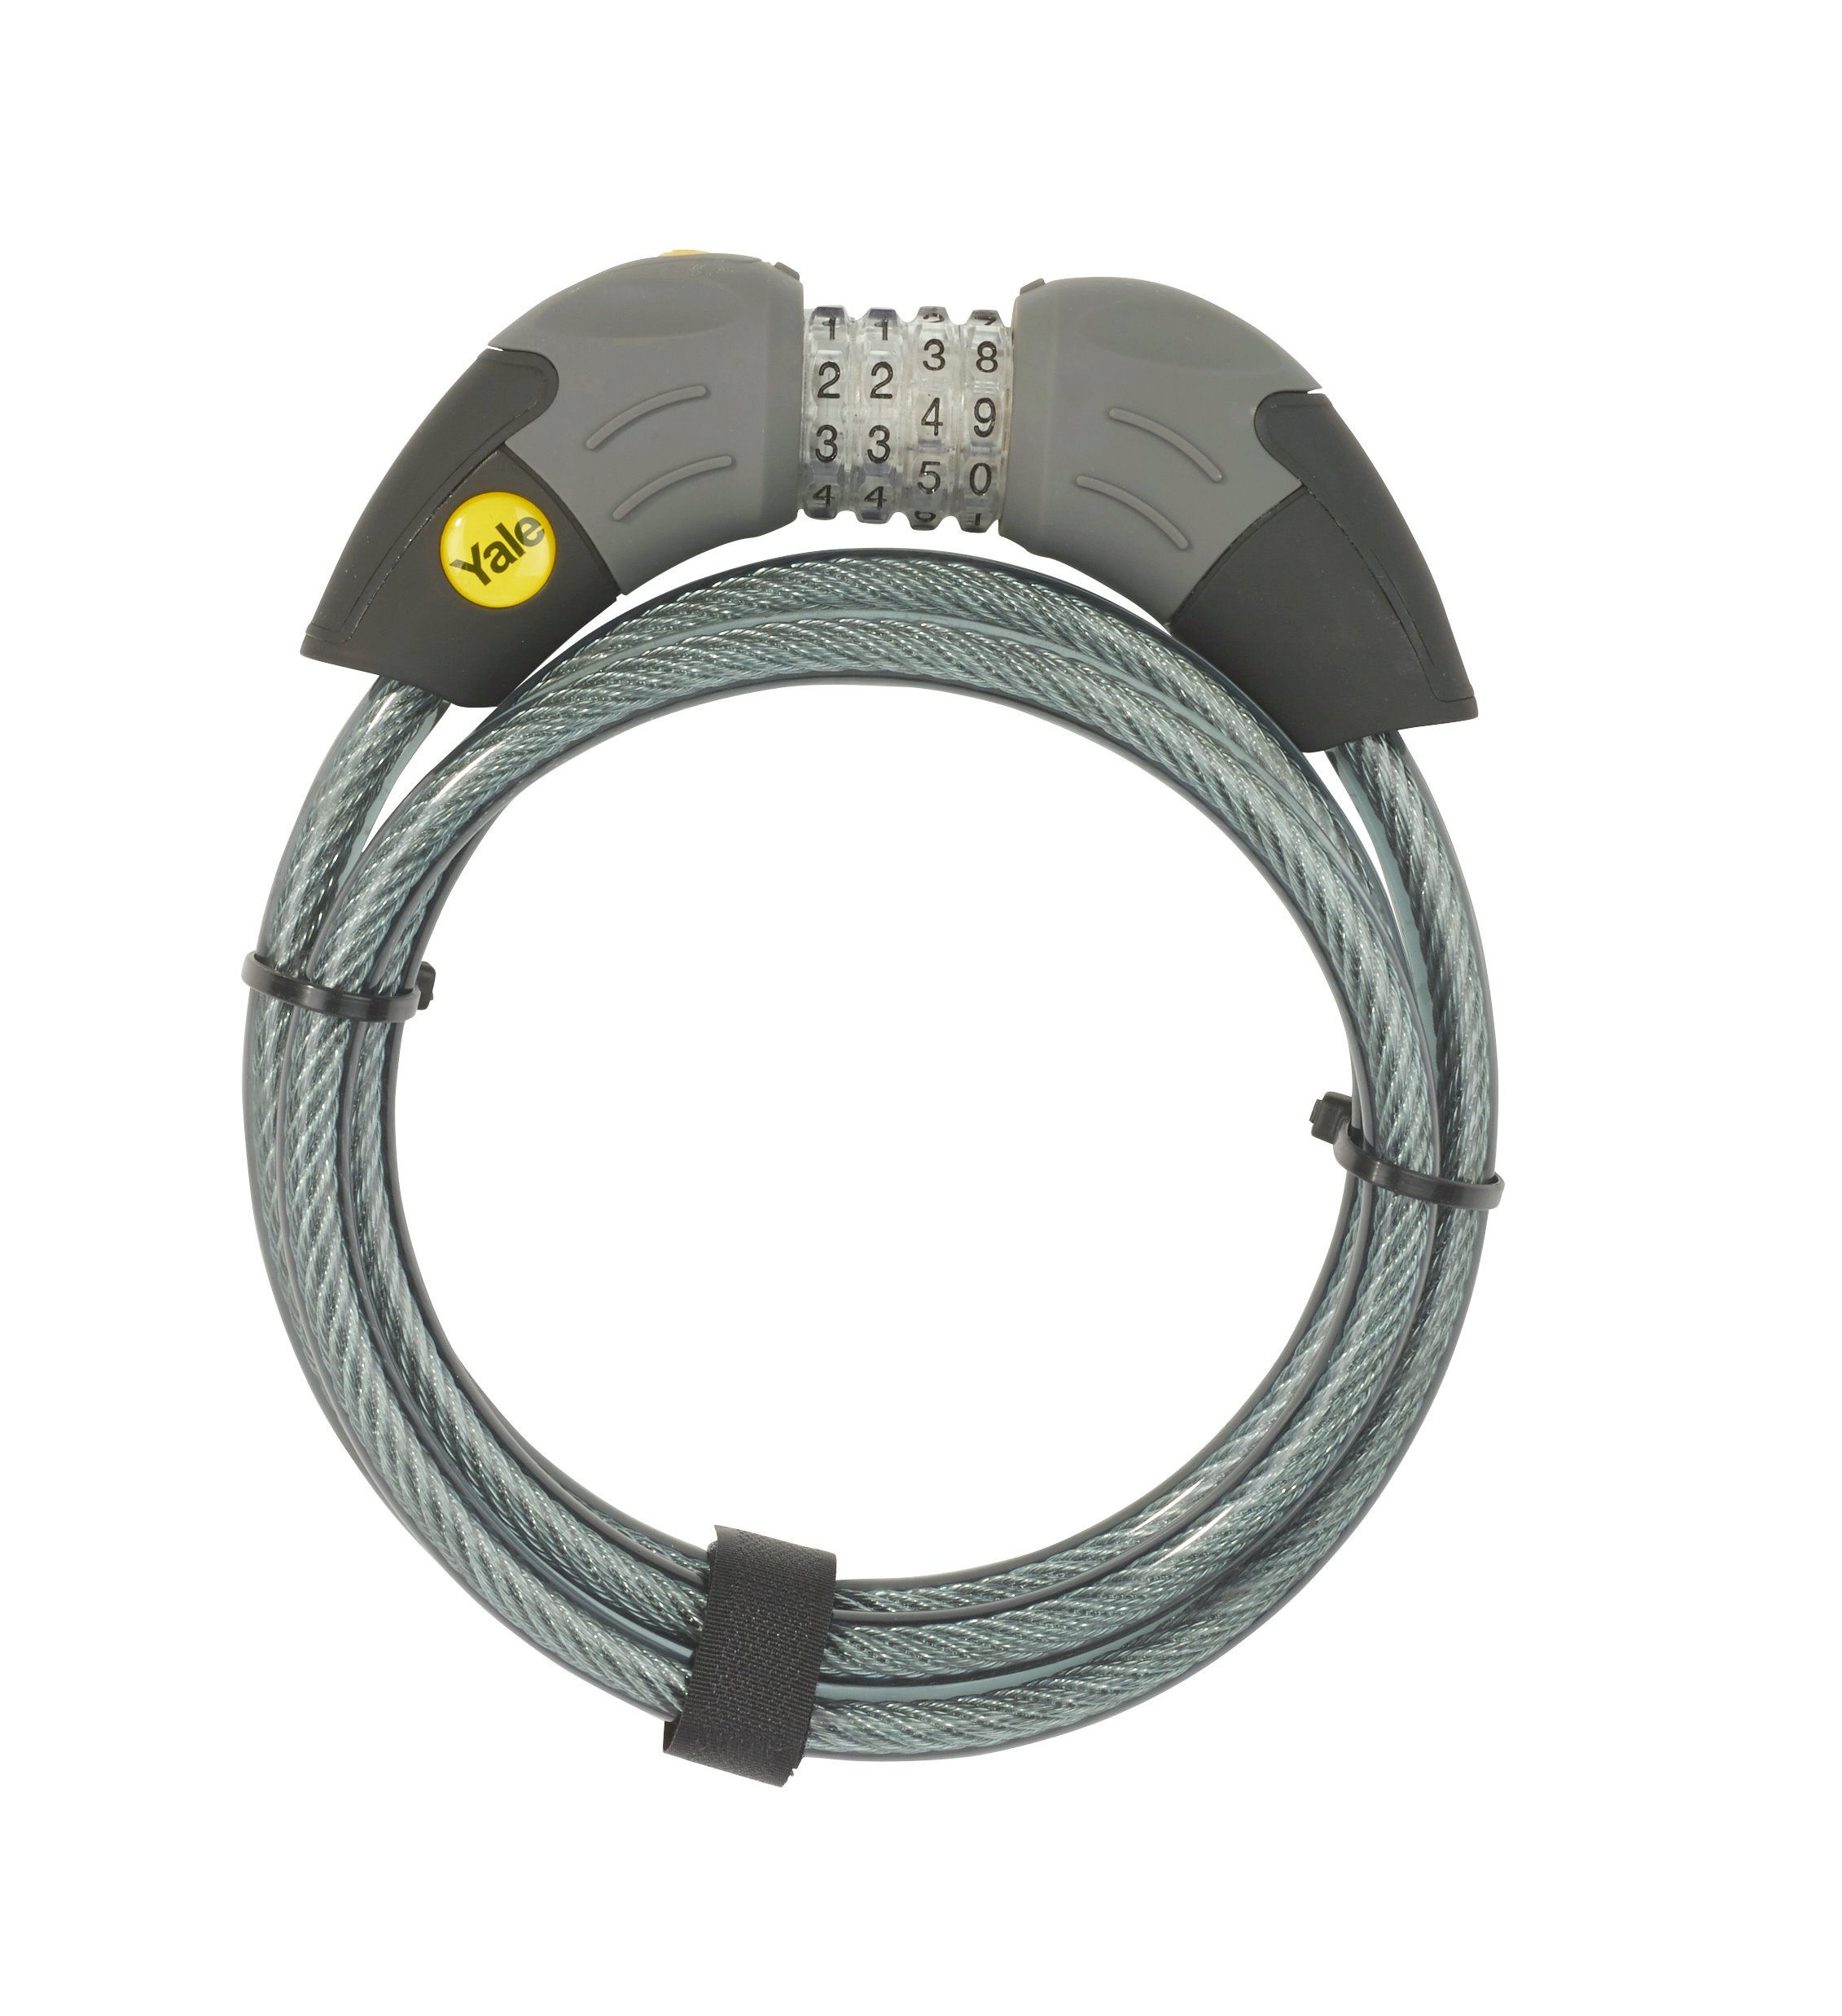 Standard Security Combination Cable Lock